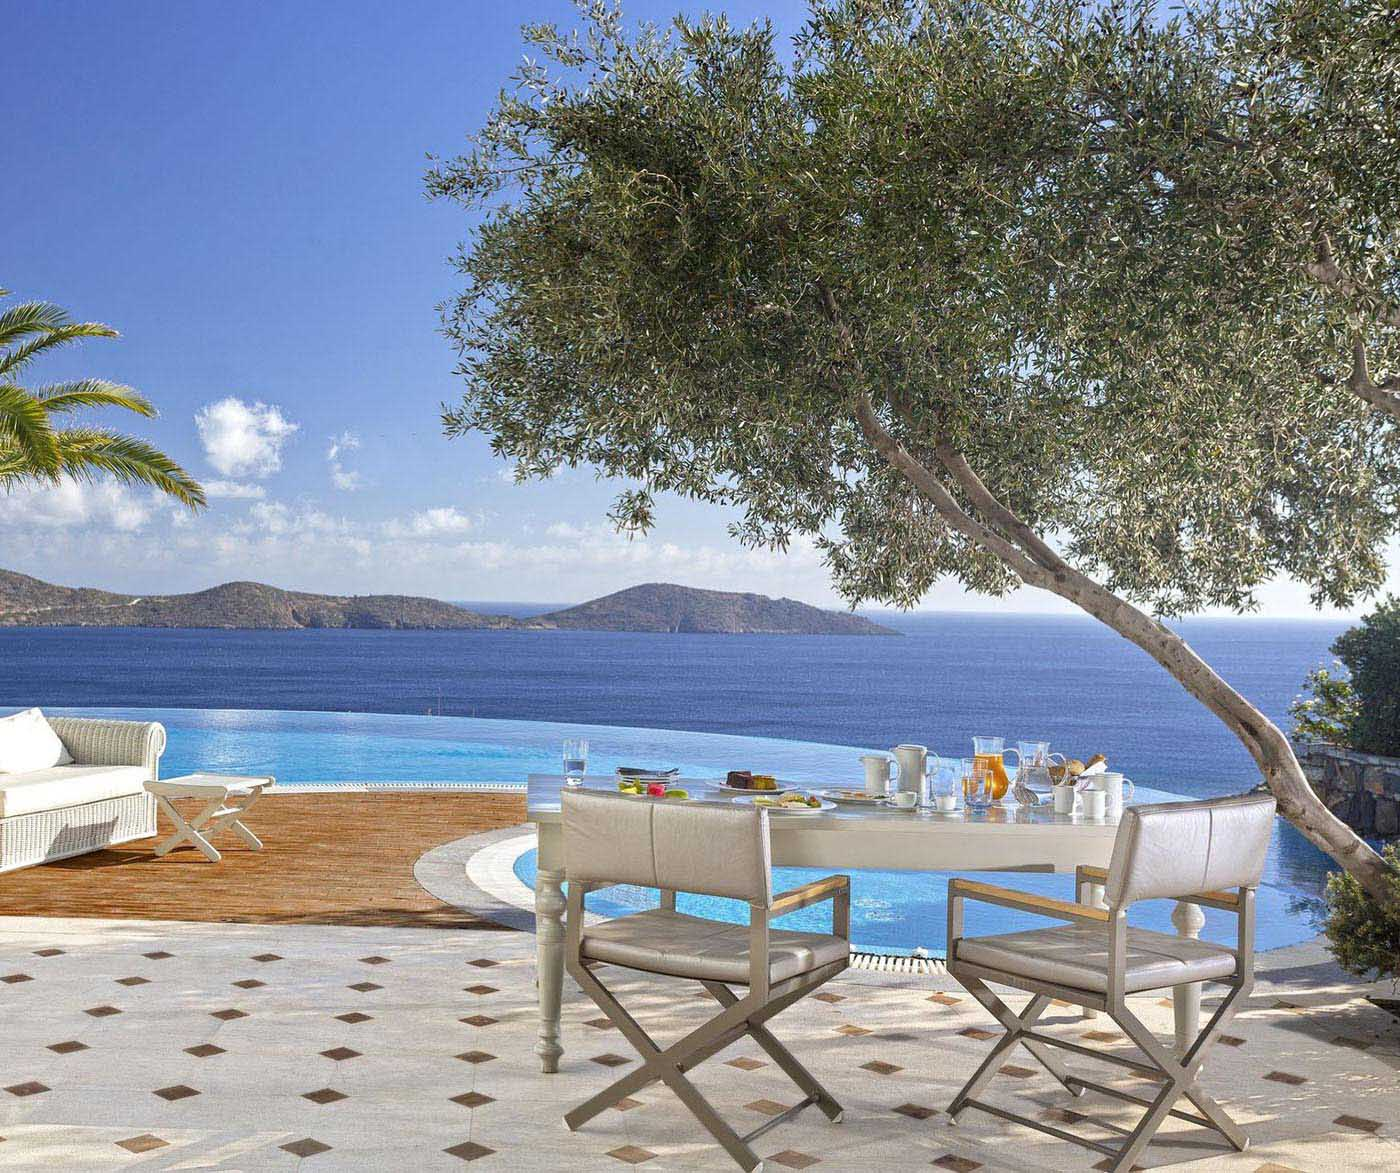 Ierapetra hotels & resorts, 50% discount for early bookings, Ierapetra, Lassithi, Crete, Greece